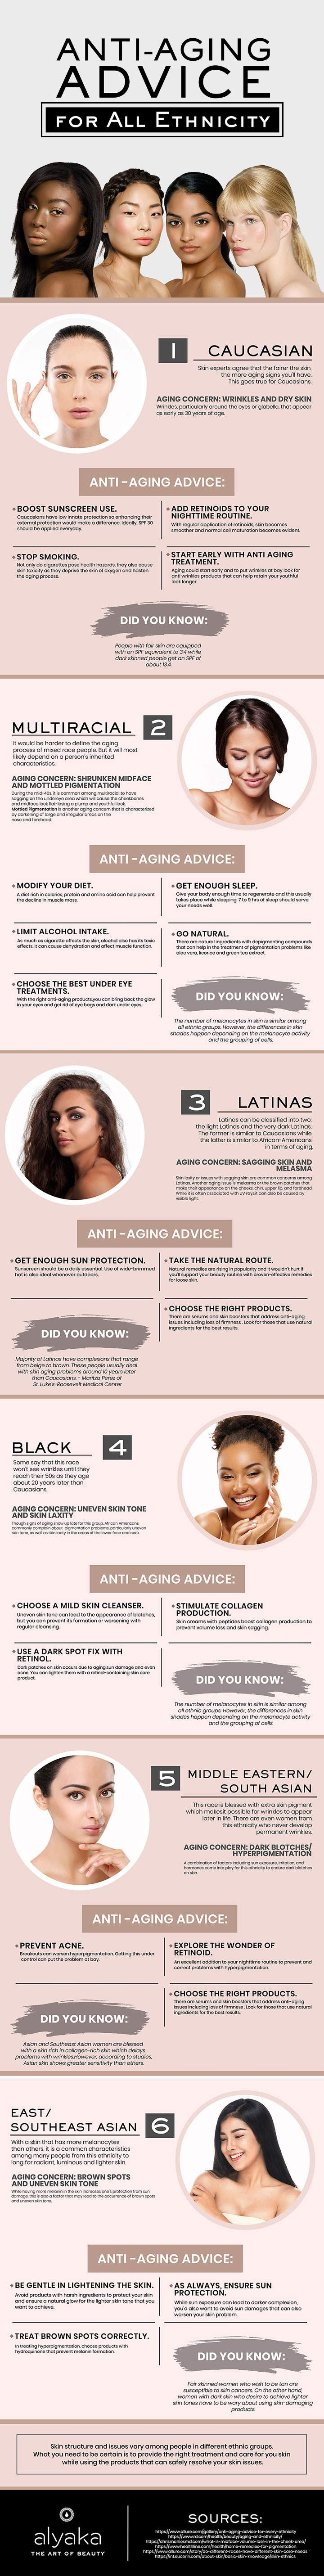 Anti-Aging-Advice-for-All-Ethnicity